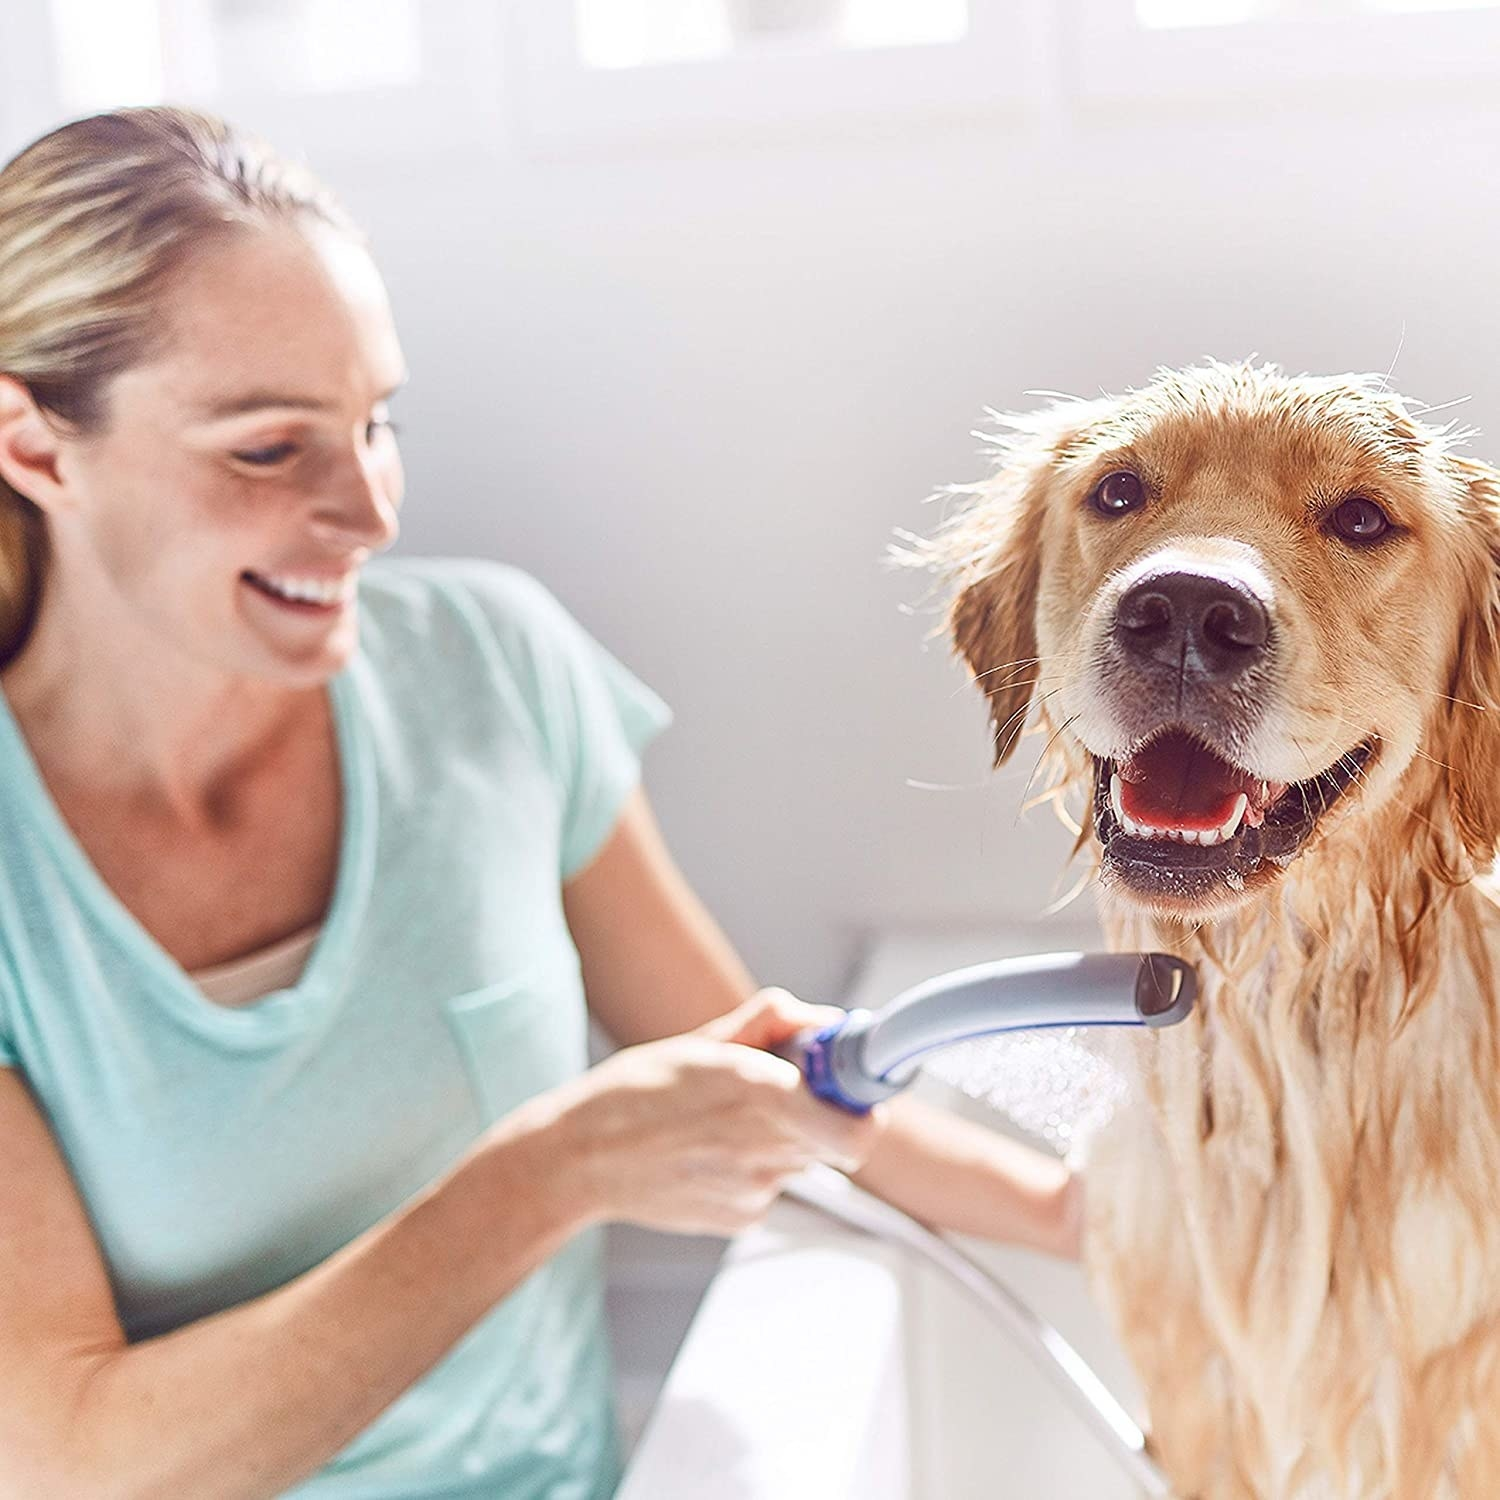 The curved bath wand being used in a bathtub to wet a dog